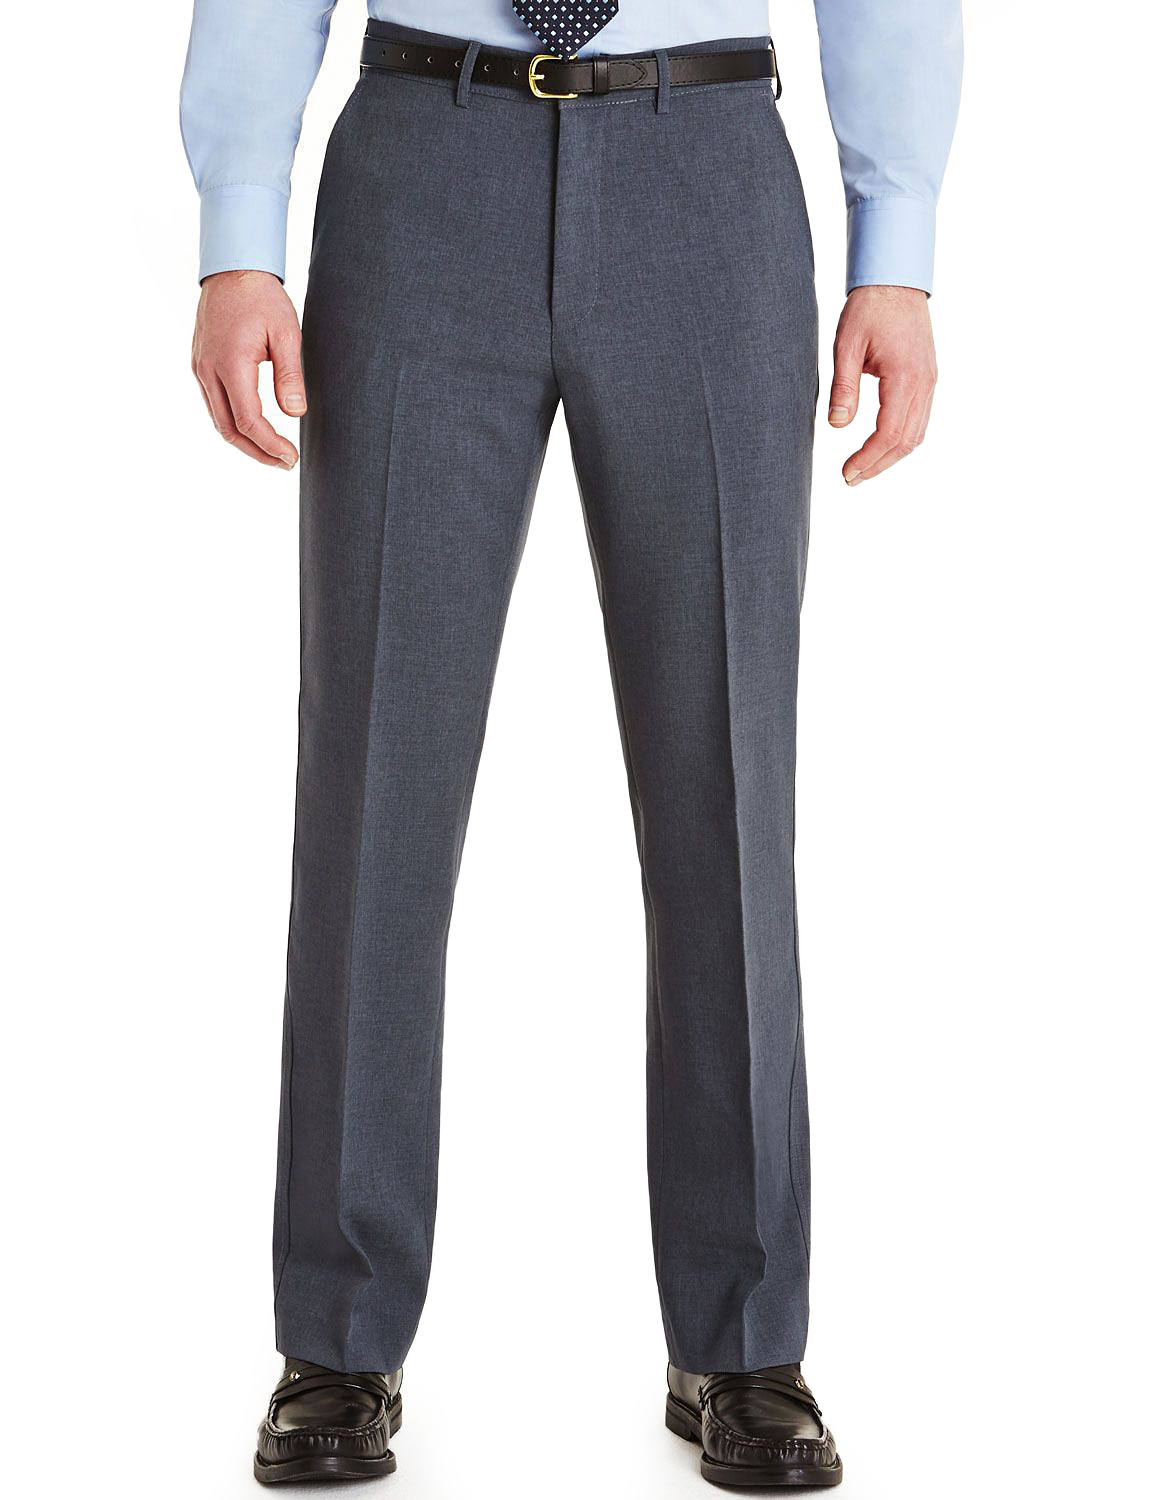 Mens Farah Slant Pocket Formal Classic Trouser | EBay